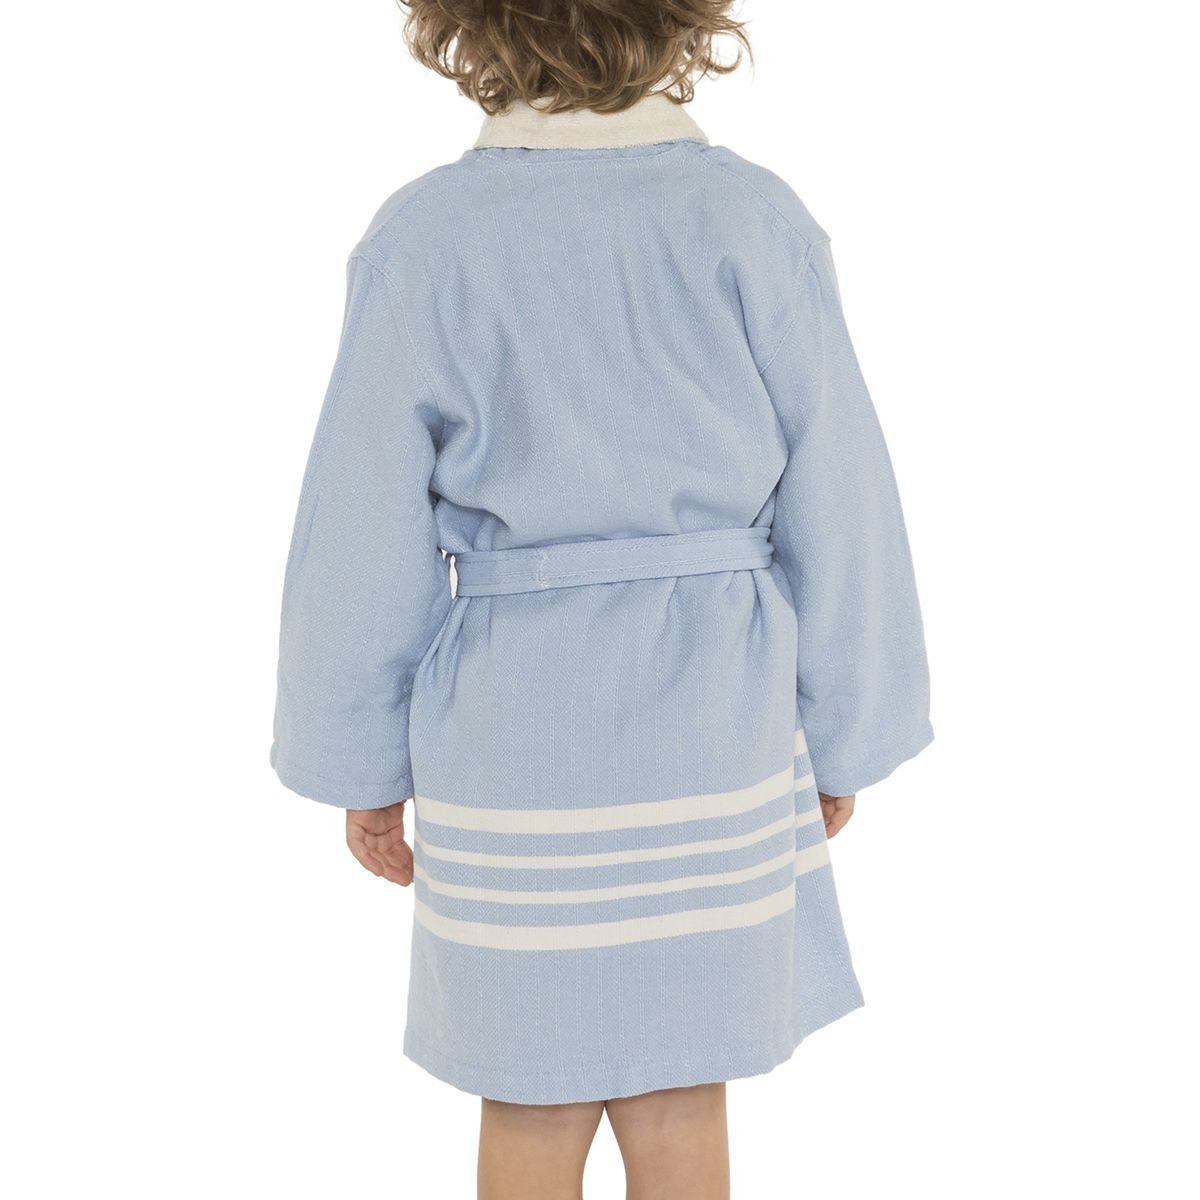 Bathrobe Kiddo Terry - Blue